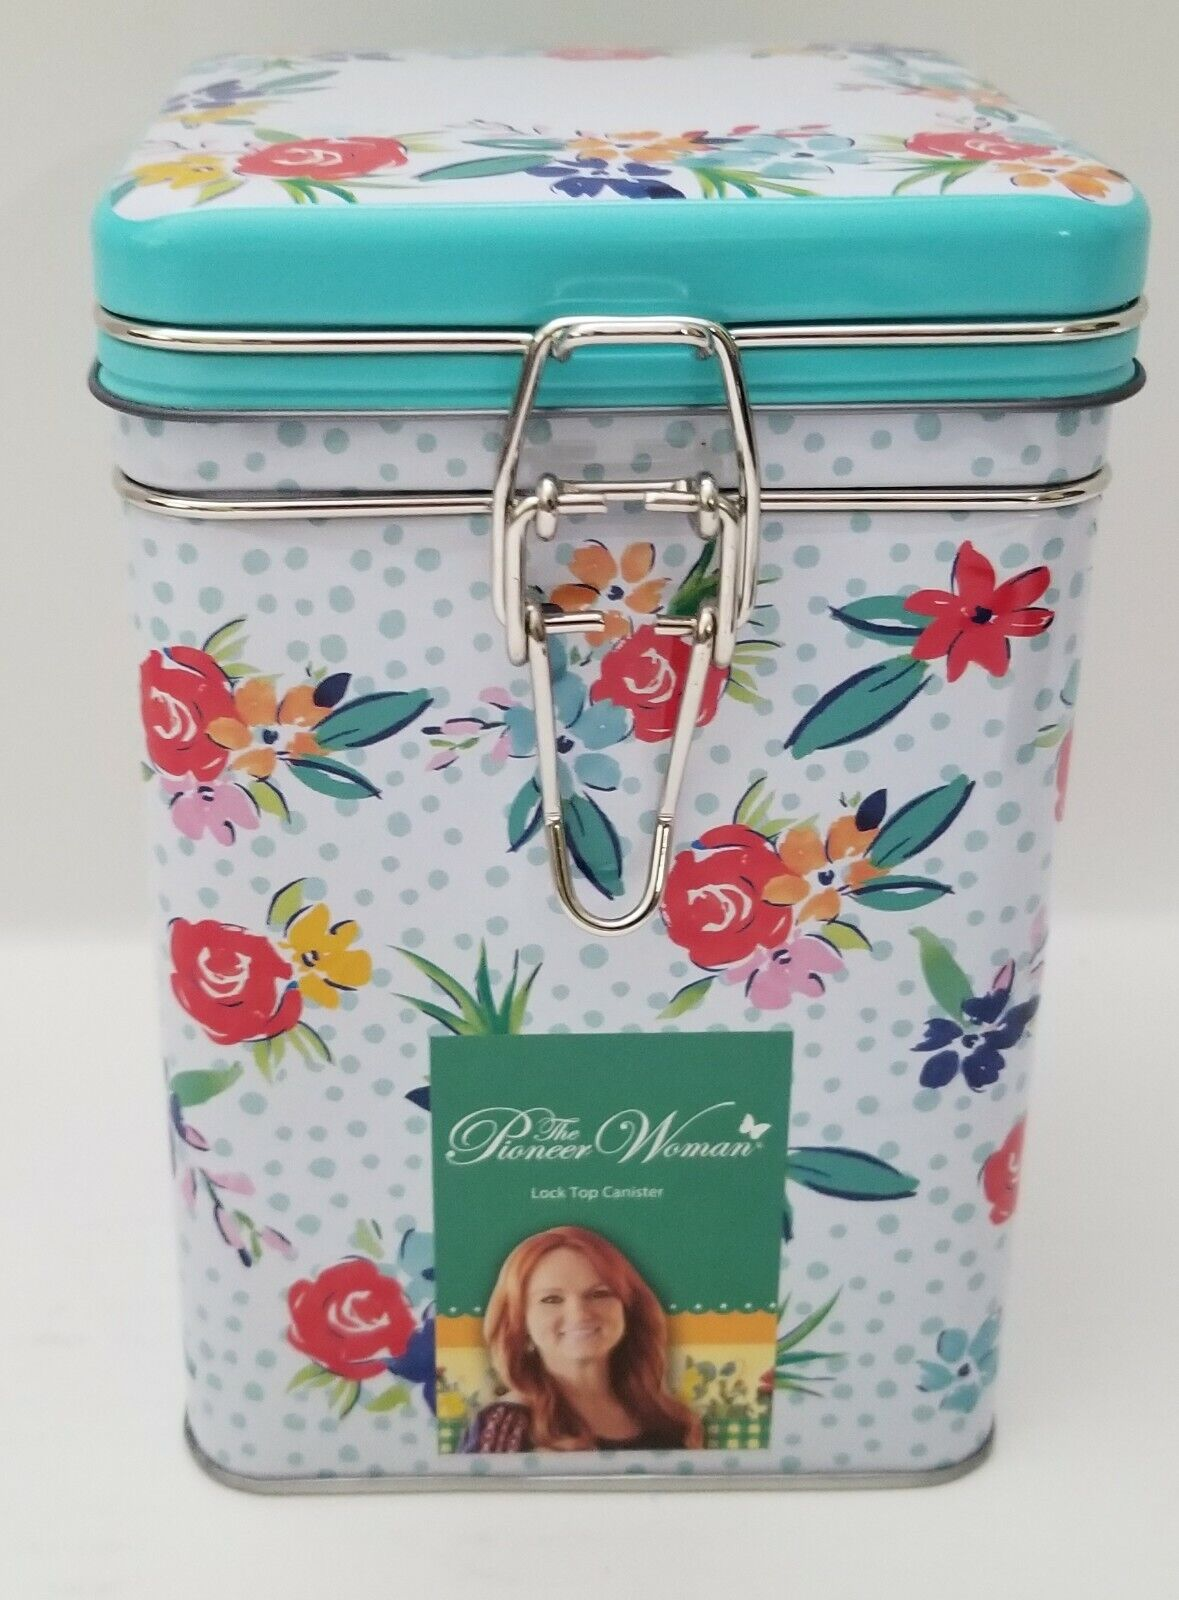 The Pioneer Woman Hinged Lock Top Square Tin Canister